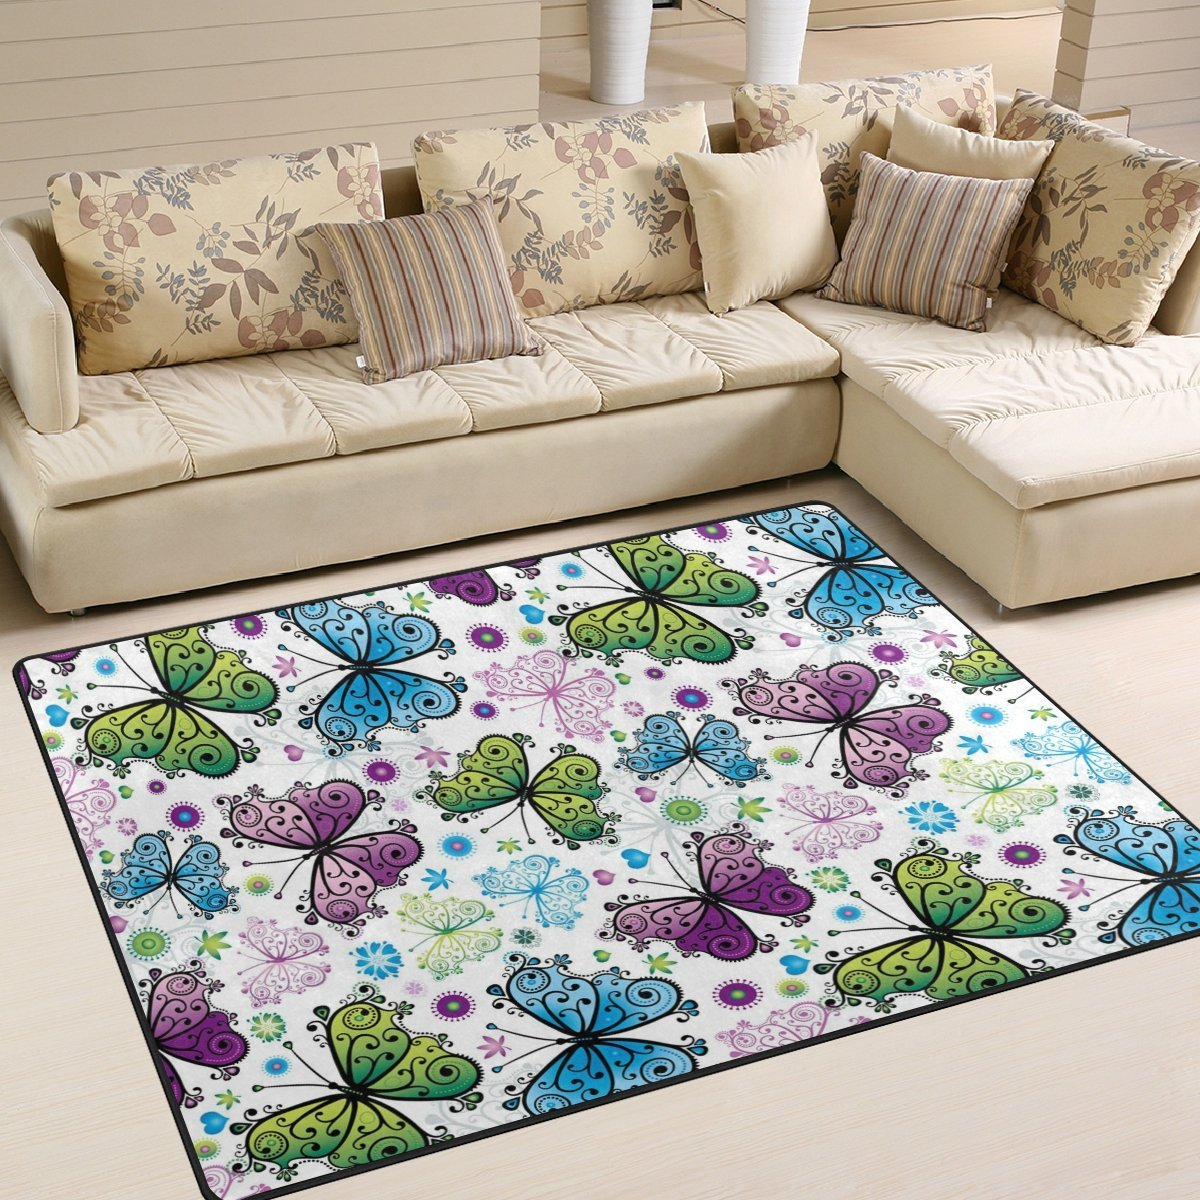 INGBAGS Super Soft Modern Butterfly Area Rugs Living Room Carpet Bedroom Rug for Children Play Solid Home Decorator Floor Rug and Carpets 6'7 x 4'8 - Feet